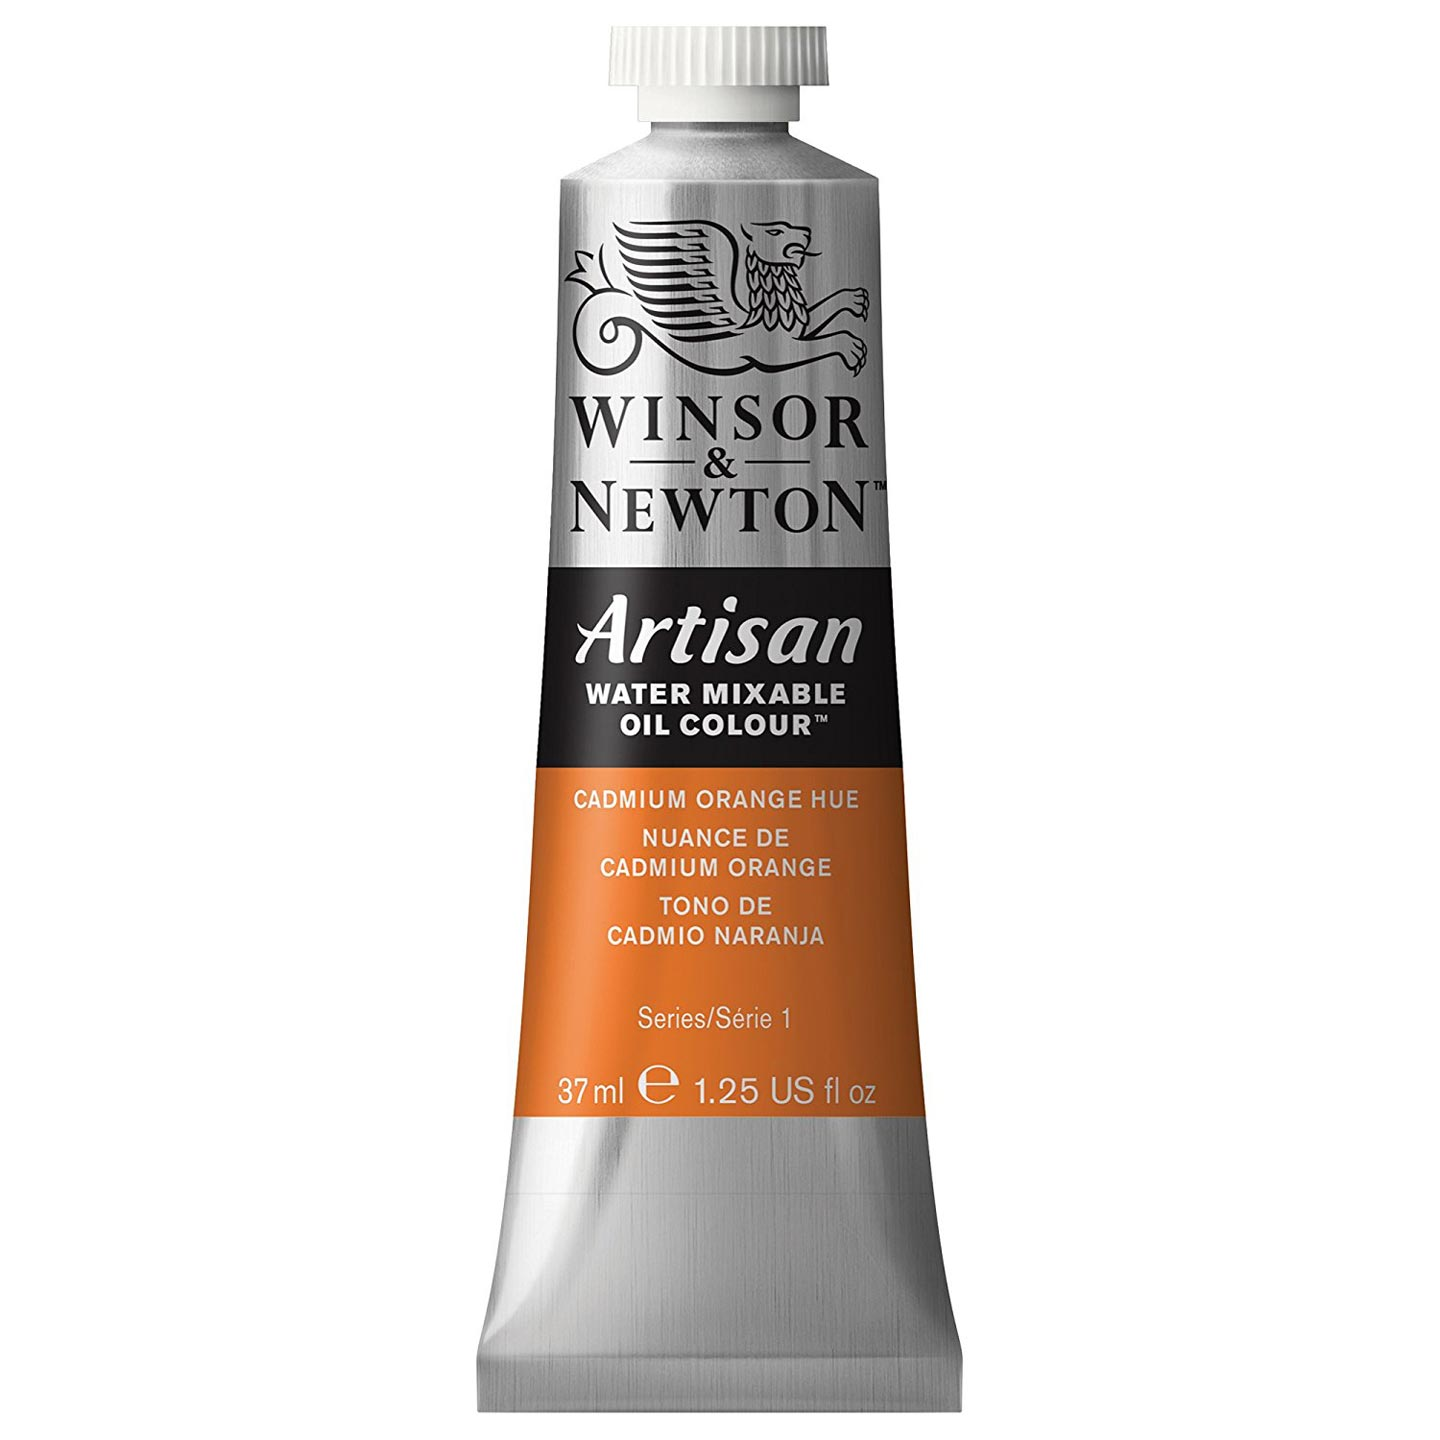 Winsor & Newton Oil Paint: Water Mixable, Cadmium Orange Hue, 37 mL